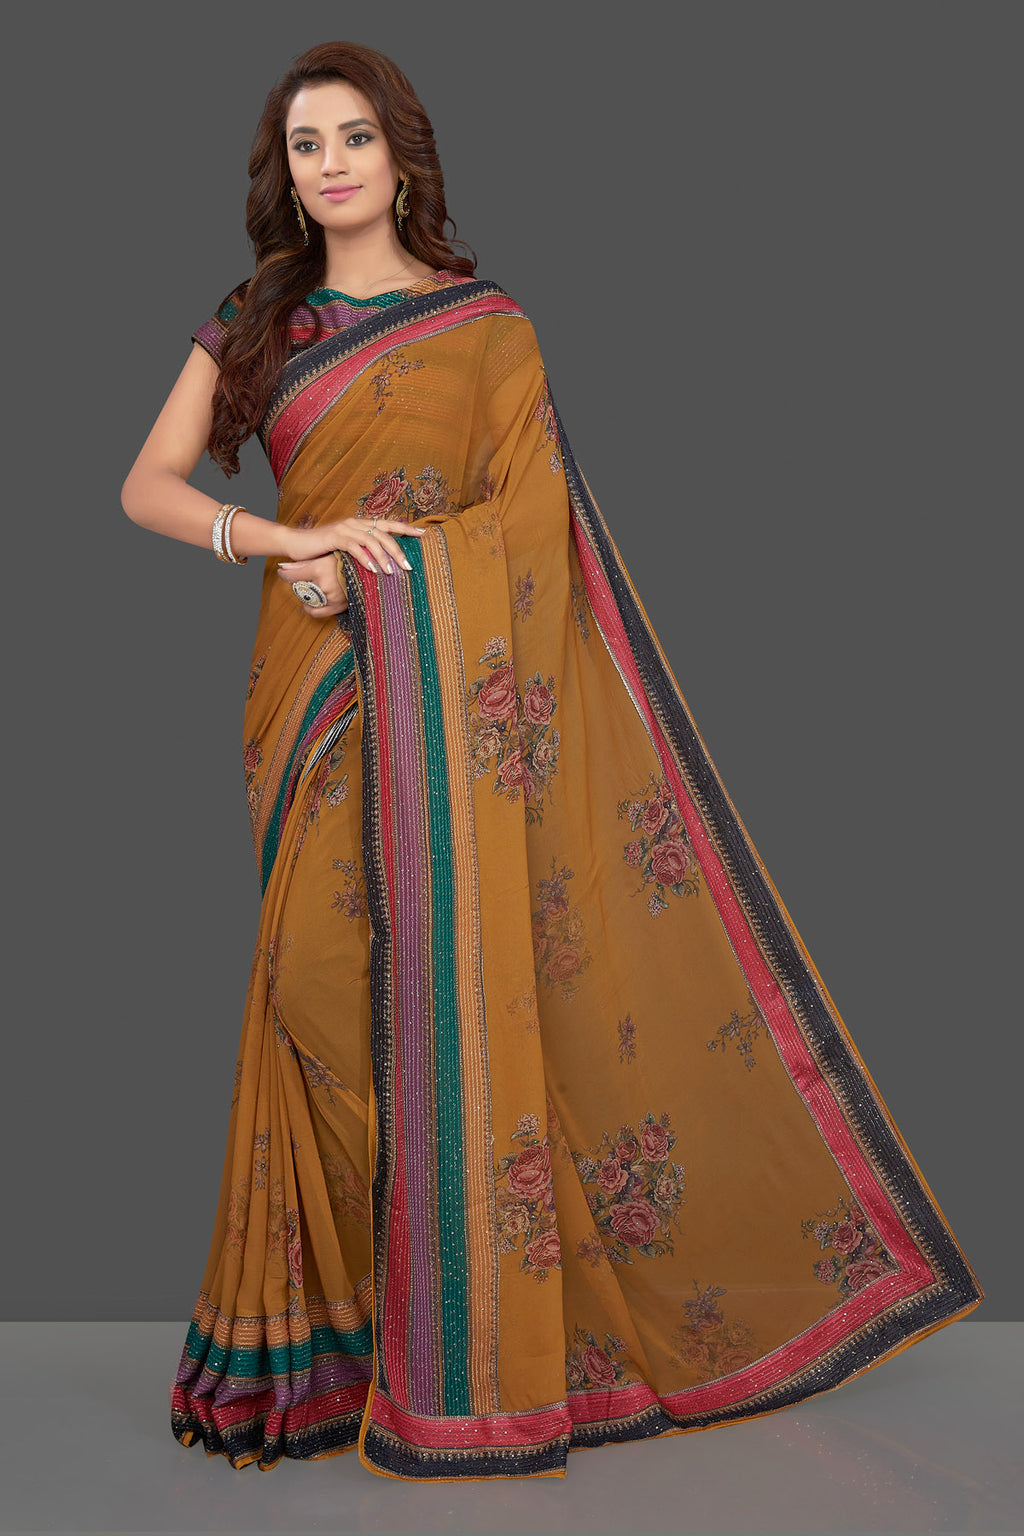 Shop beautiful mustard floral georgette saree online in USA with multicolor blouse. Make you presence felt with your Indian style on special occasions in beautiful designer sarees, embroidered sarees, muga sarees, georgette sarees from Pure Elegance Indian fashion store in USA.-full view